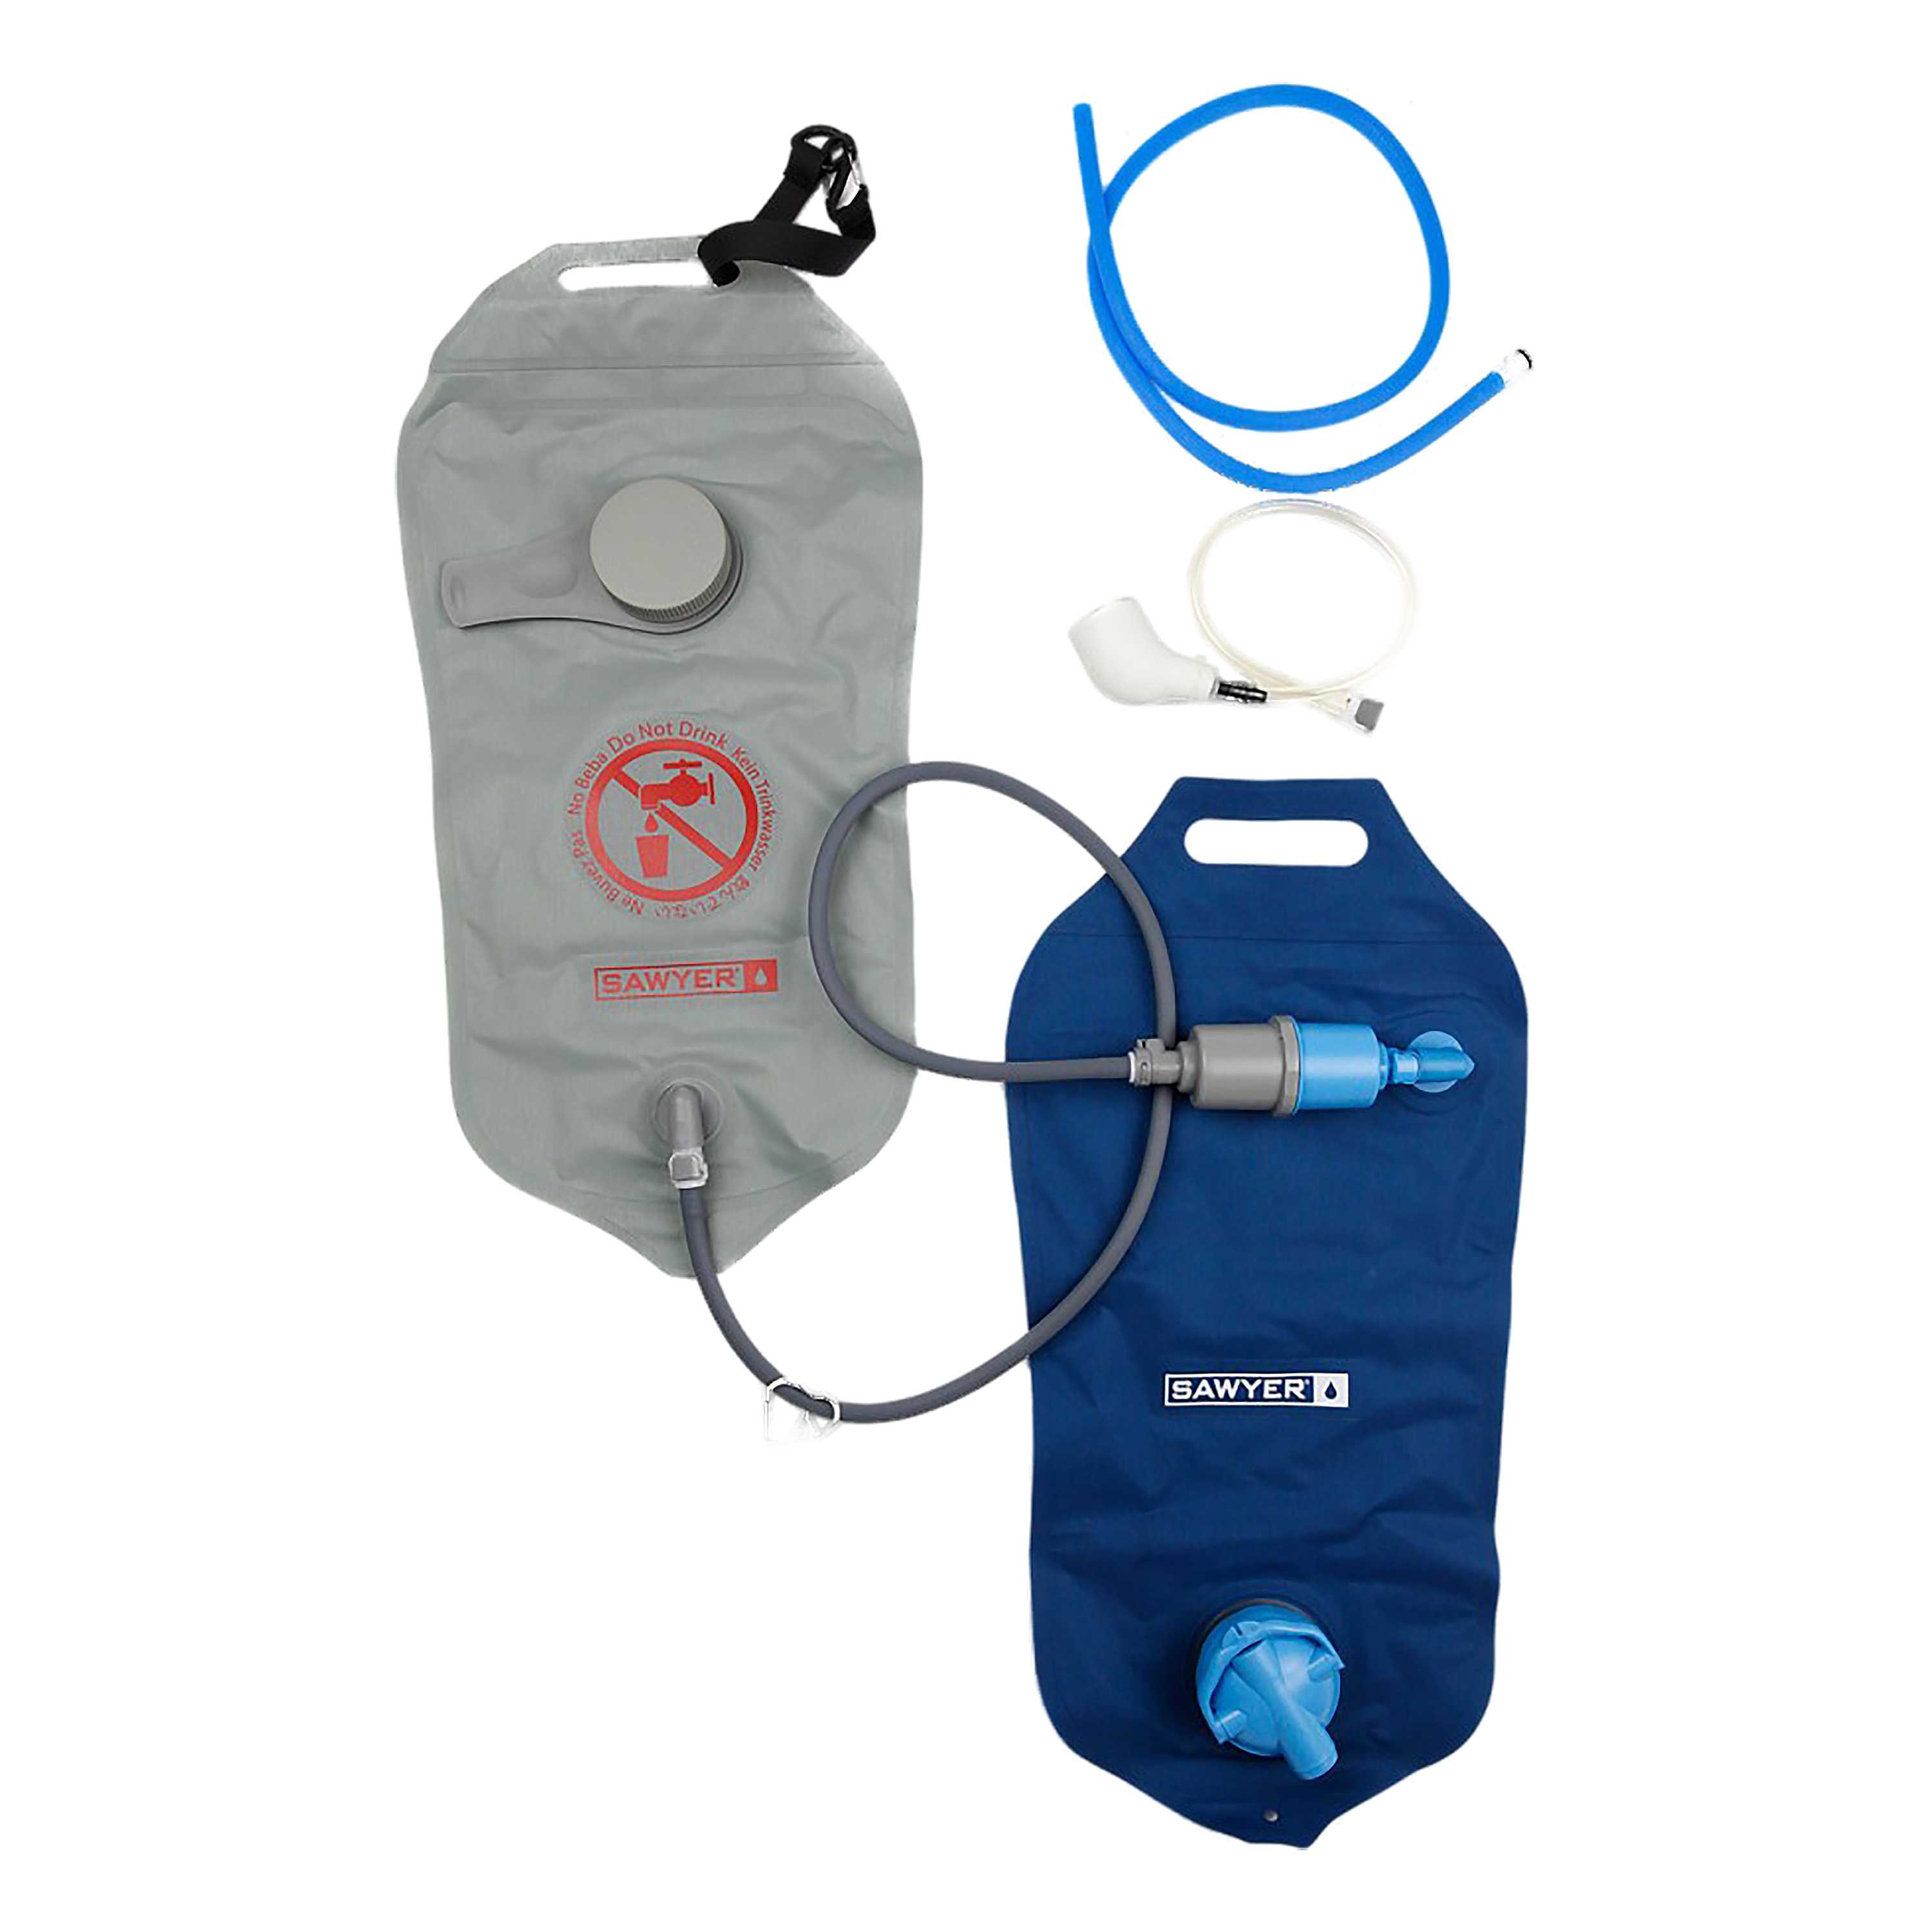 Sawyer Complete 4L Water-Filter System